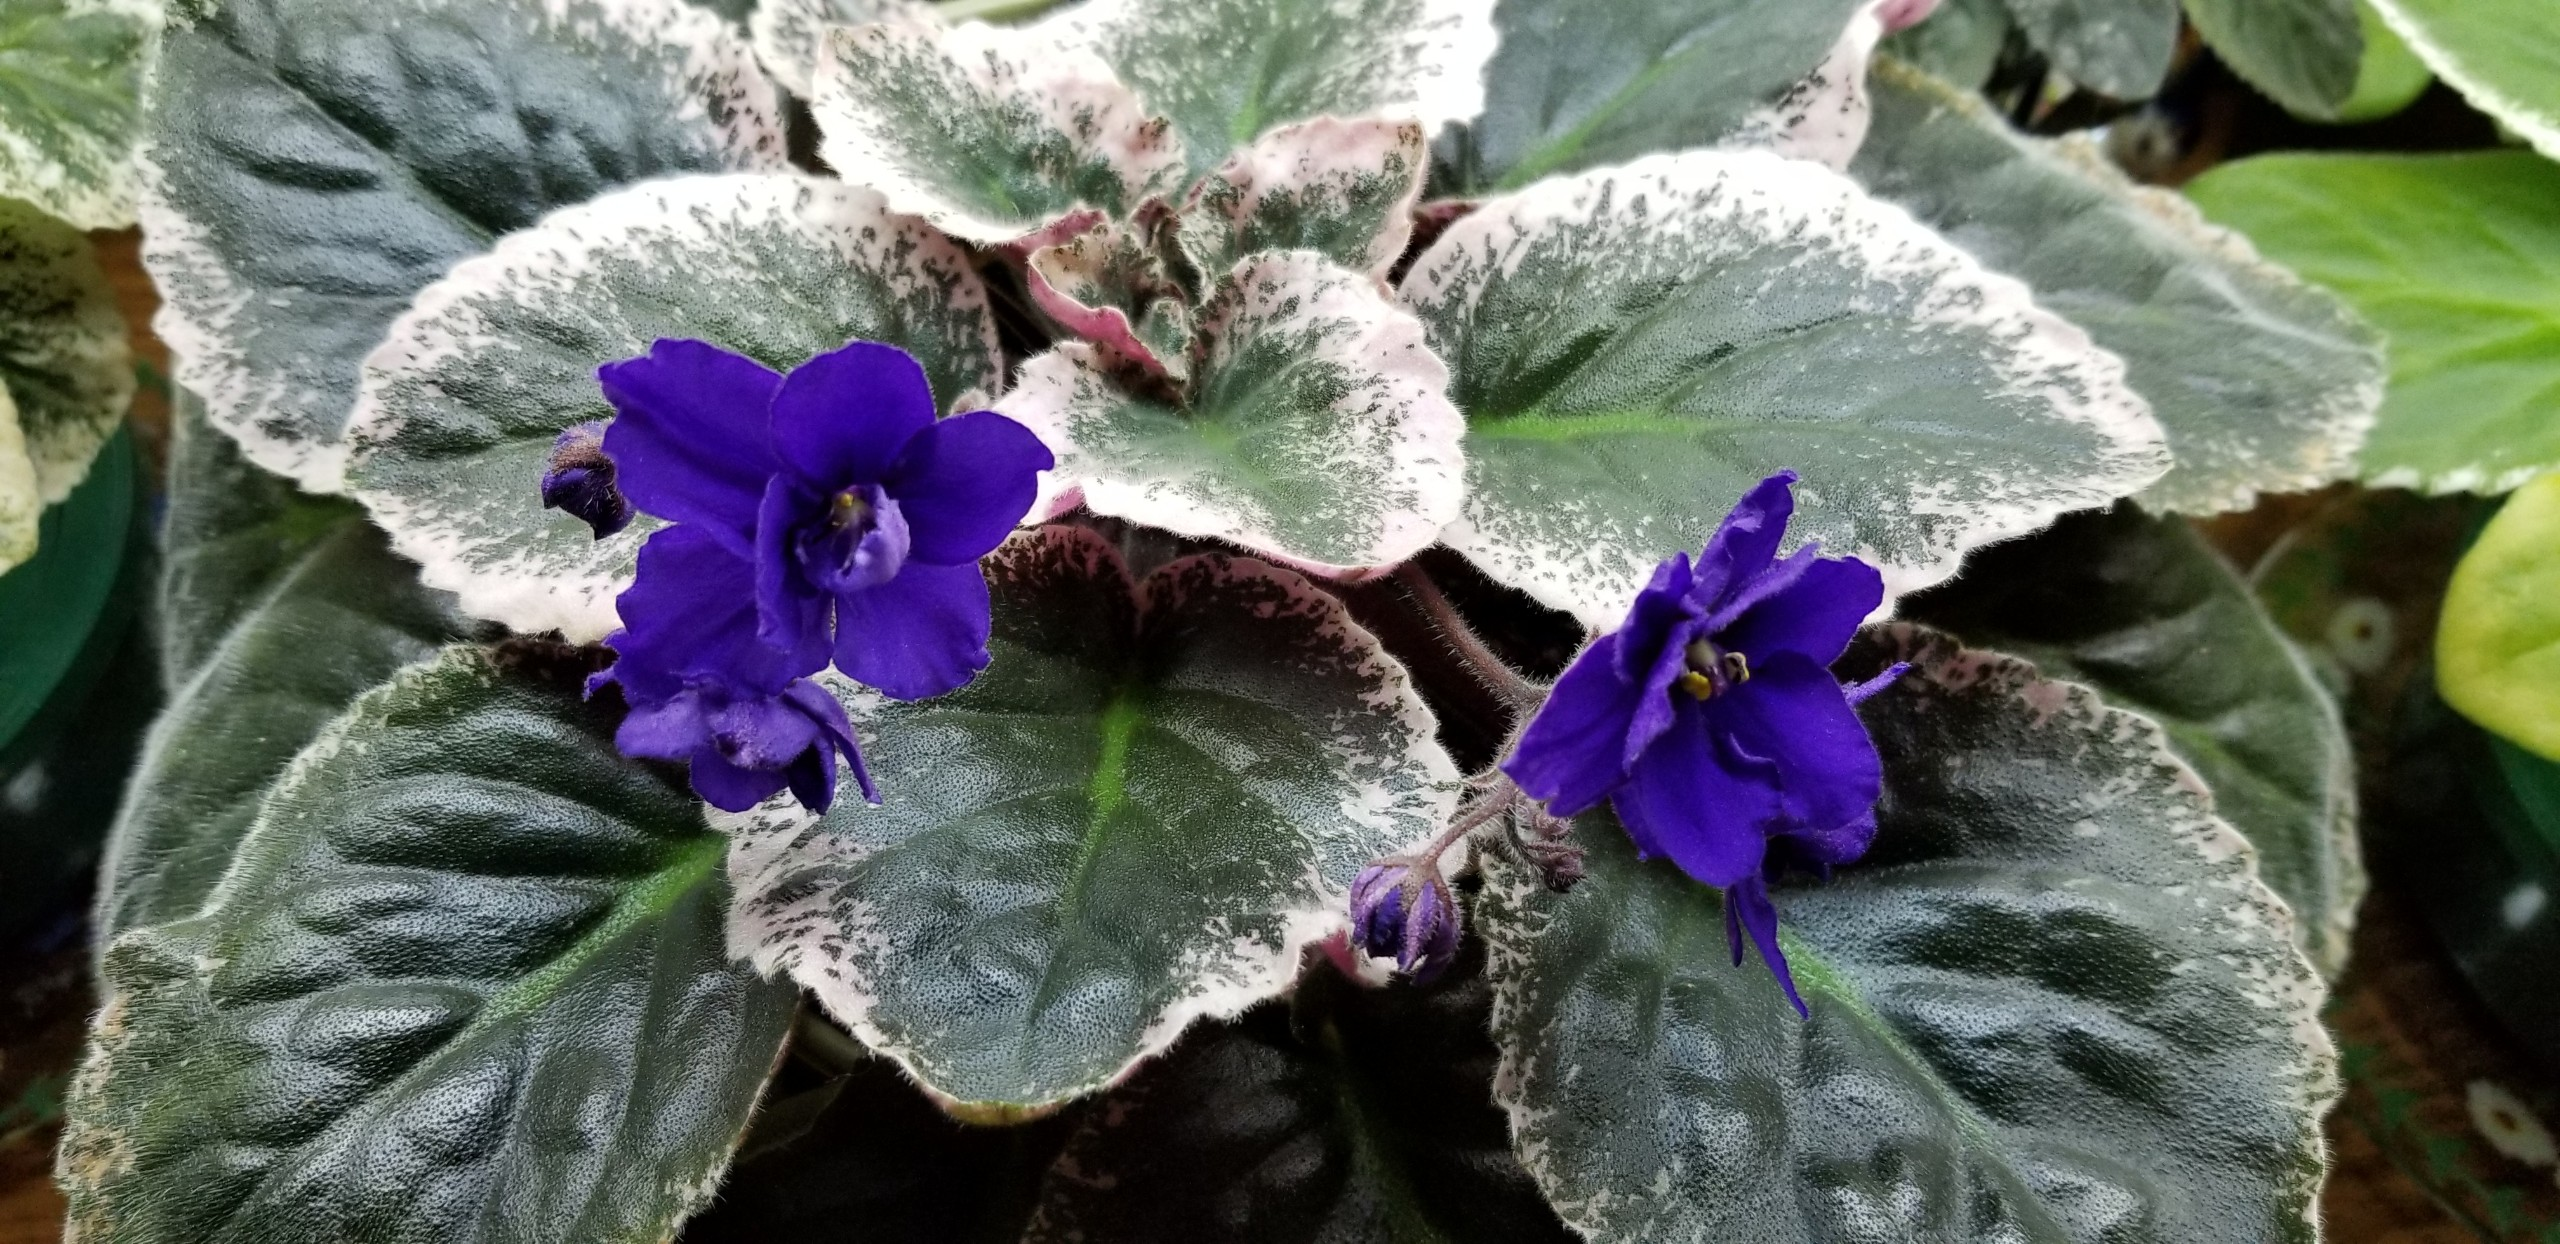 Dark deep royal blue-violet purple and semi-double                                                                                                                                                                                          Size/growth habit: 50% Variegated mostly on edges, leaves lay out flat